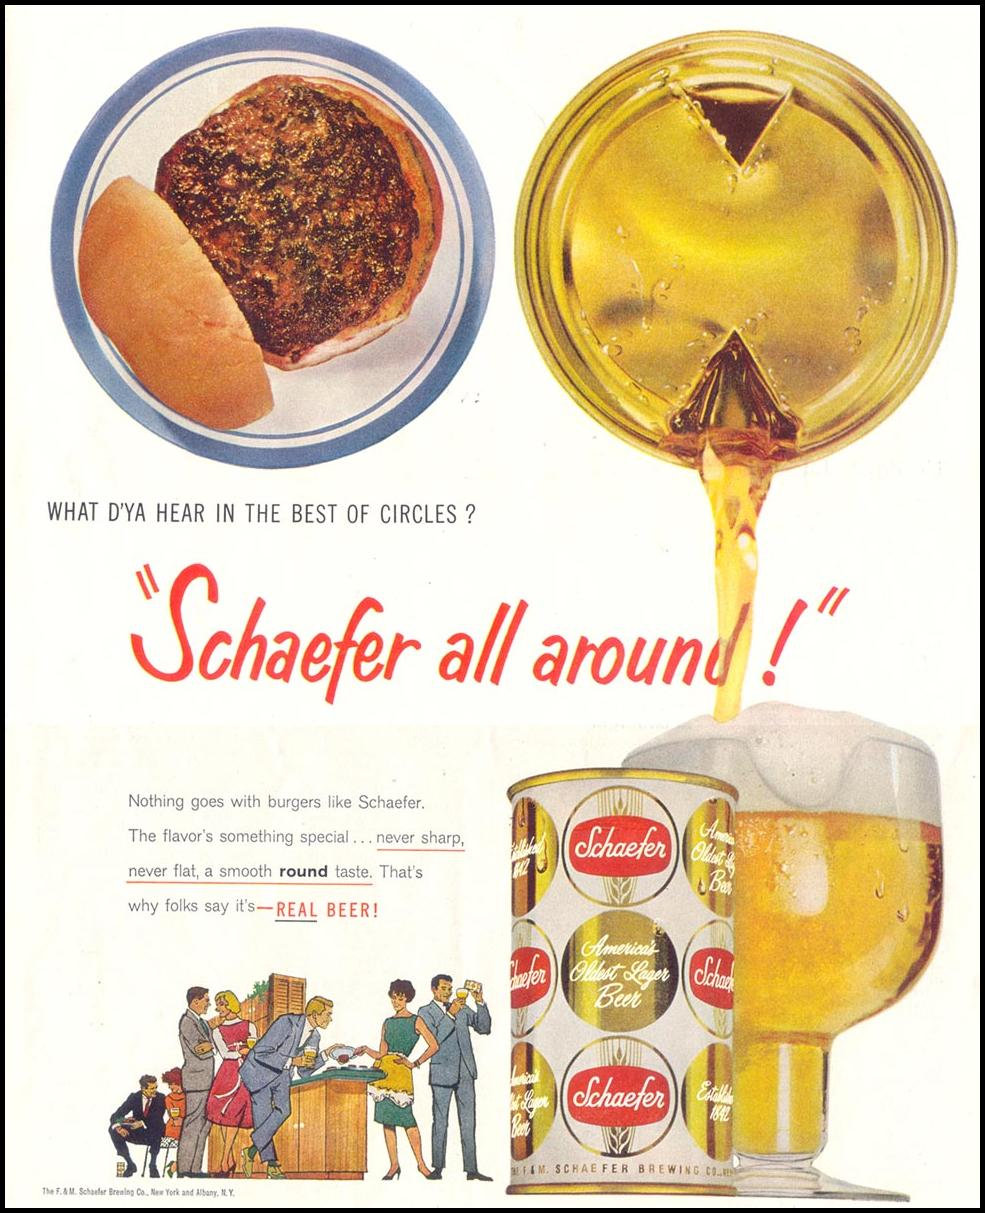 SHAEFER BEER SATURDAY EVENING POST 05/02/1959 p. 99